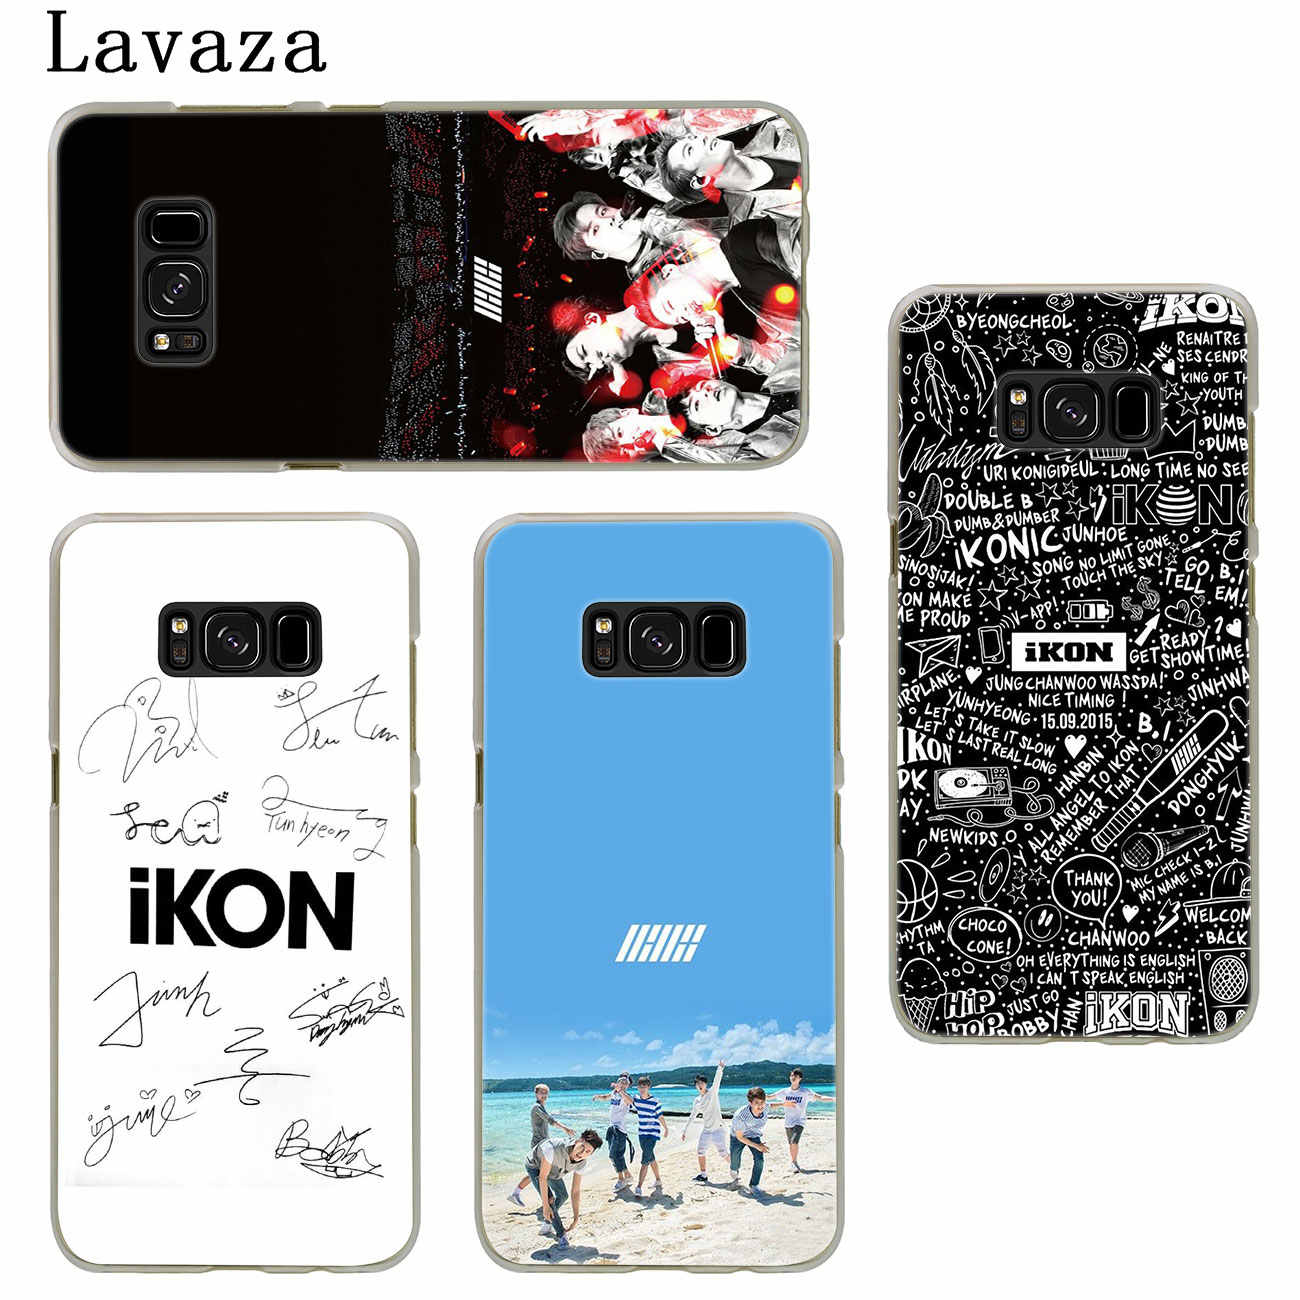 Lavaza ikon kpop music Hard Phone Case for Samsung Galaxy S10 S10E S8 Plus  S6 S7 Edge S9 Plus Cover